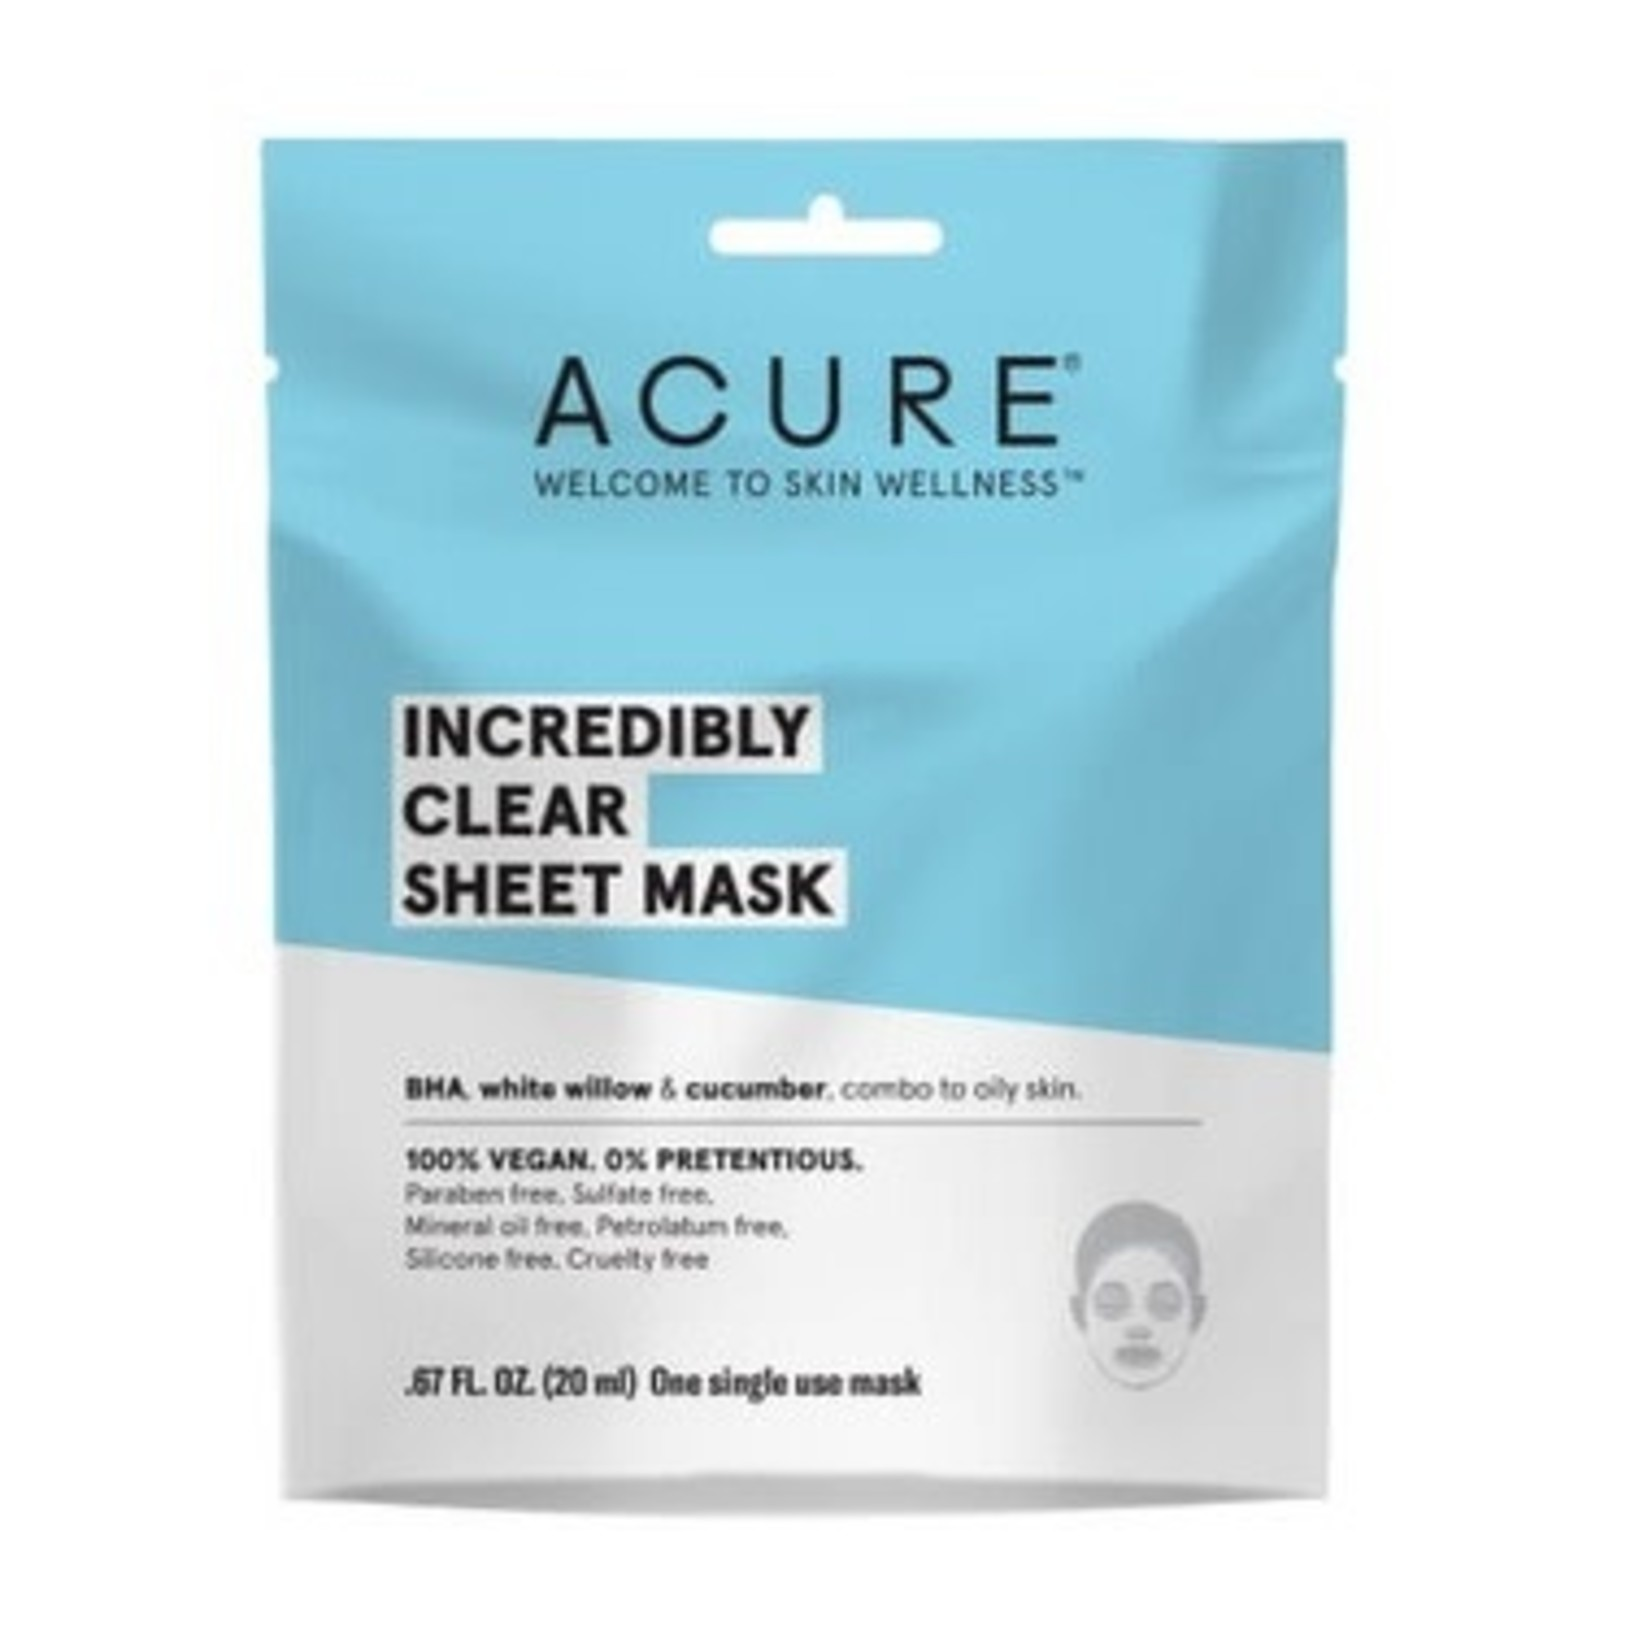 Acure Acure Incredibly Clear Sheet Mask